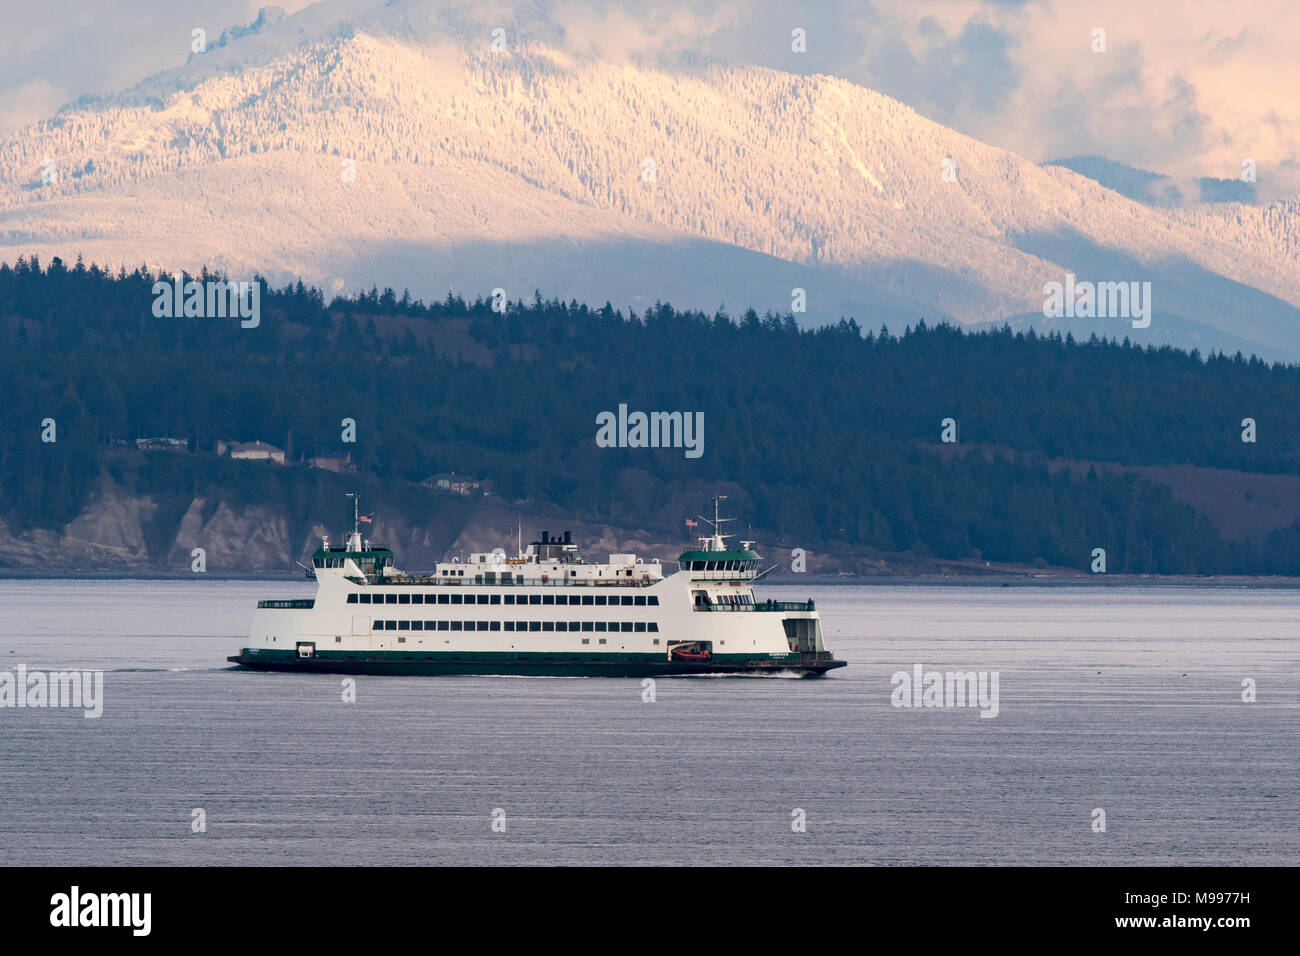 Puget Sound ferry with Cascade mountains in background. Washington State ferries. Port Townsend ferry. - Stock Image